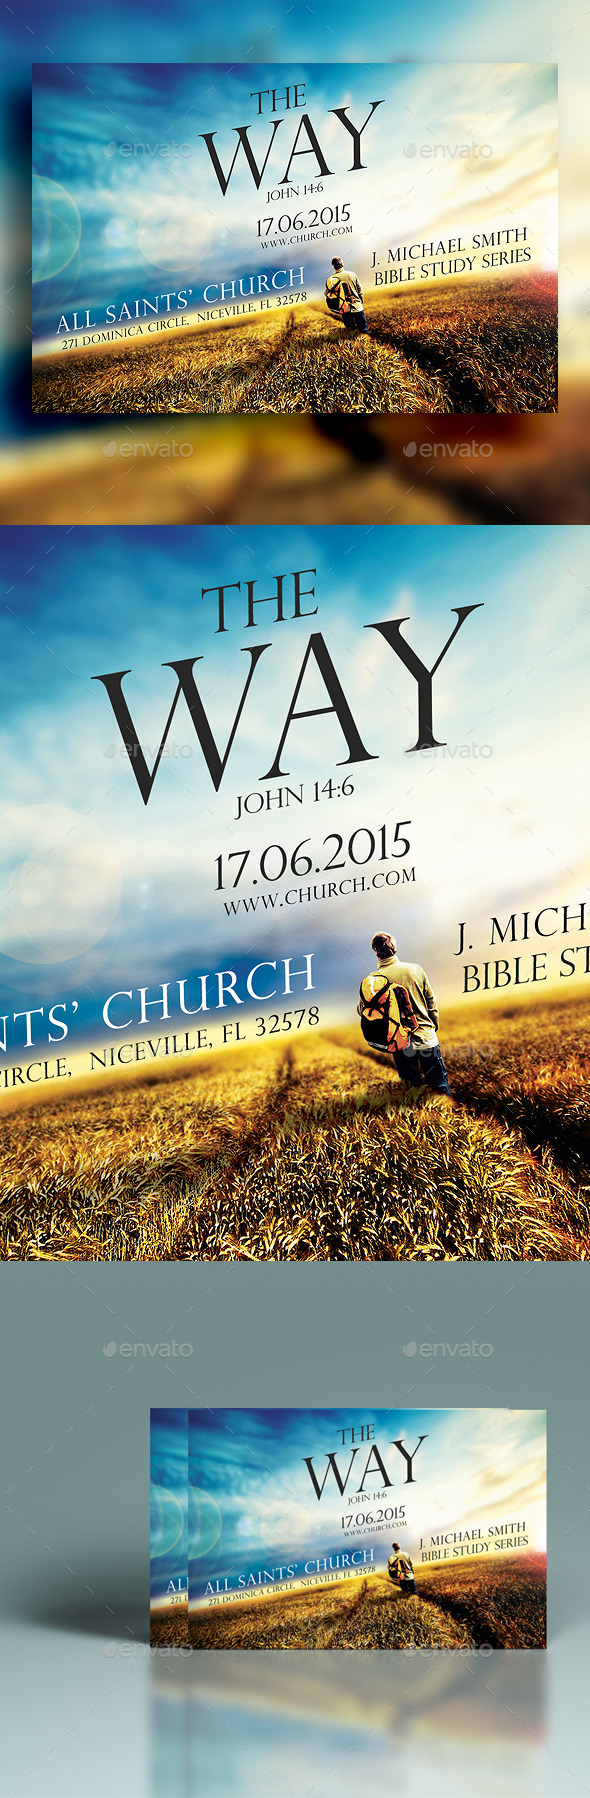 The Way Church Flyer - Church Flyers